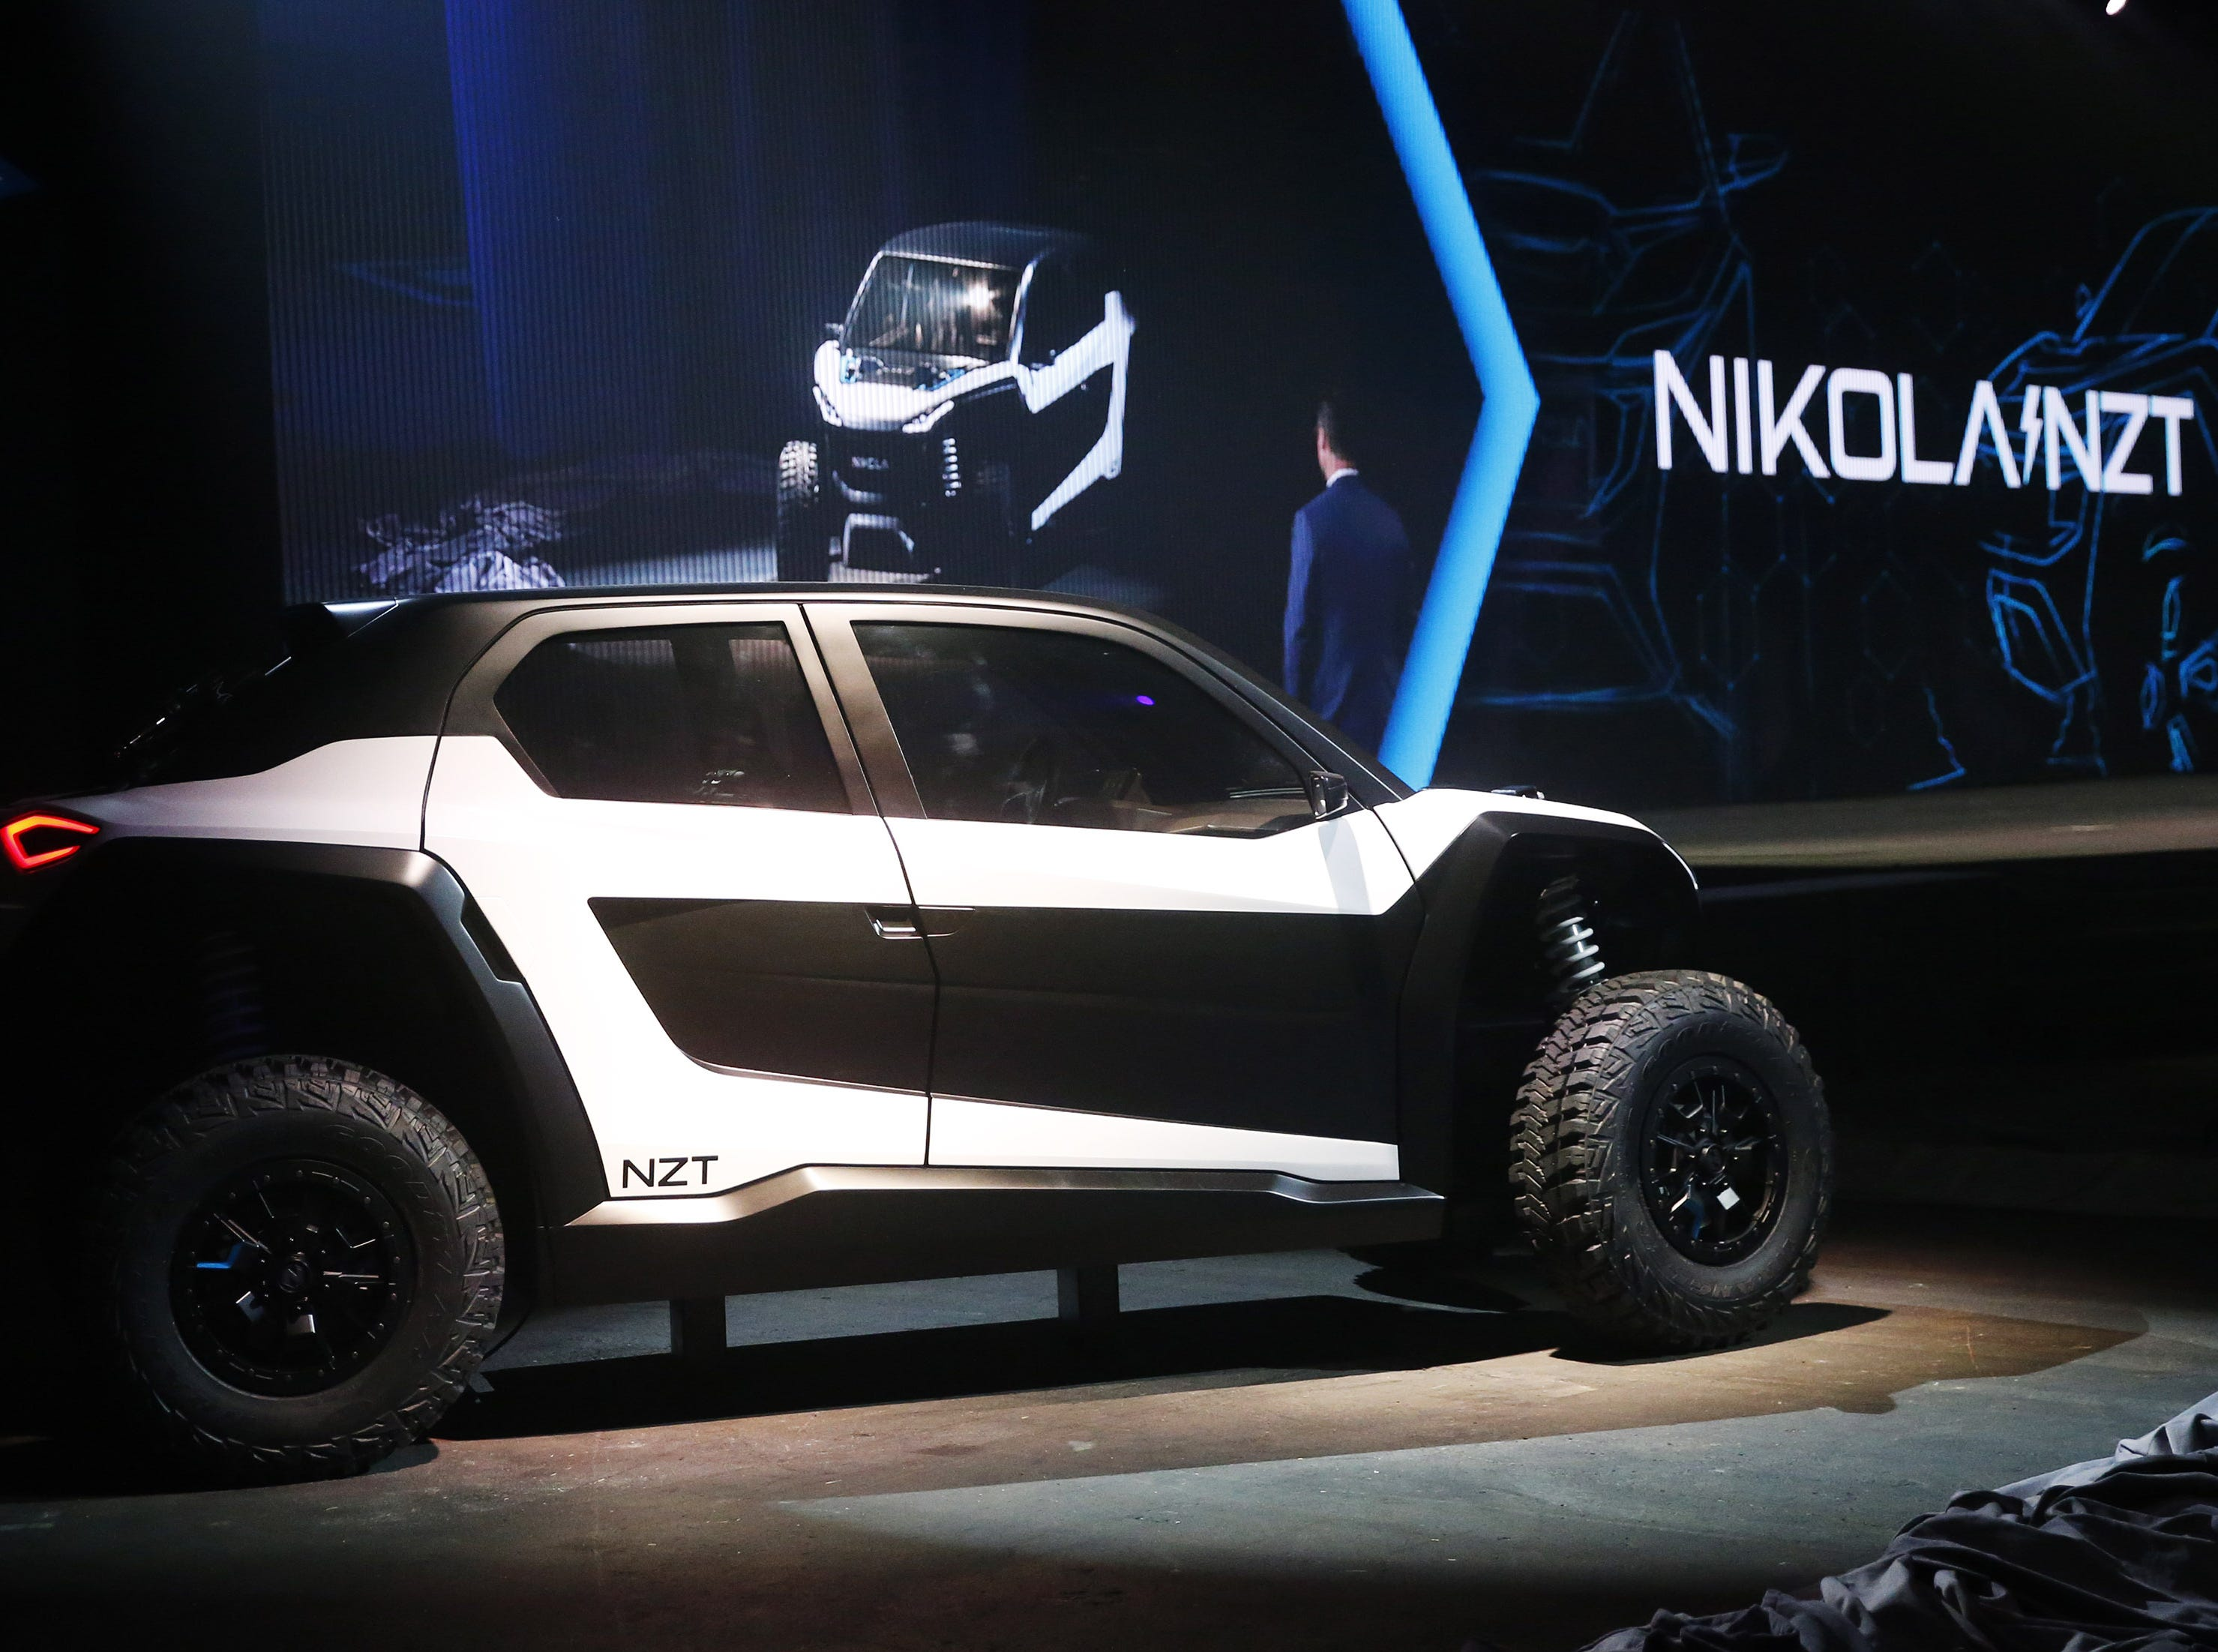 The Nikola NZT shown at Nikola World 2019 at Westworld in Scottsdale, Ariz. April 16, 2019.